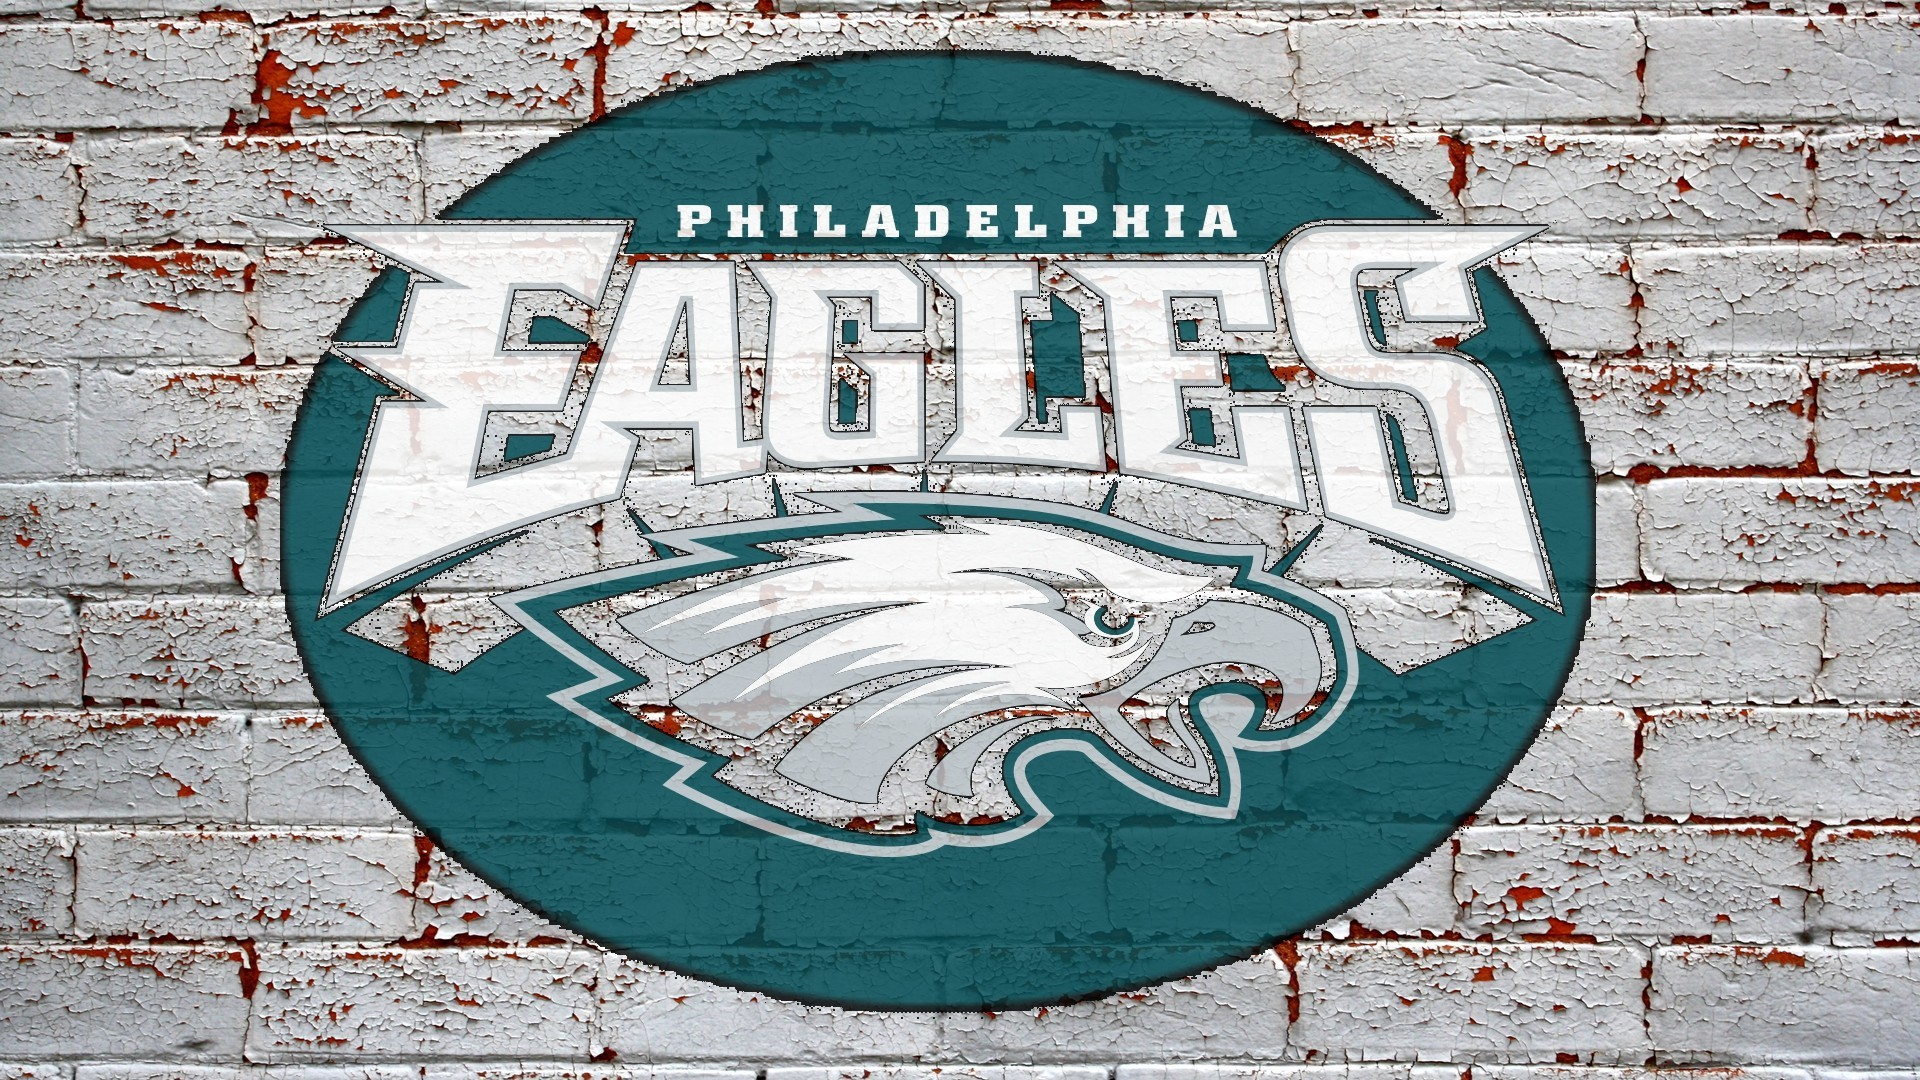 1920x1080 eagles, wallpaper, philadelphia, logo, philadephia